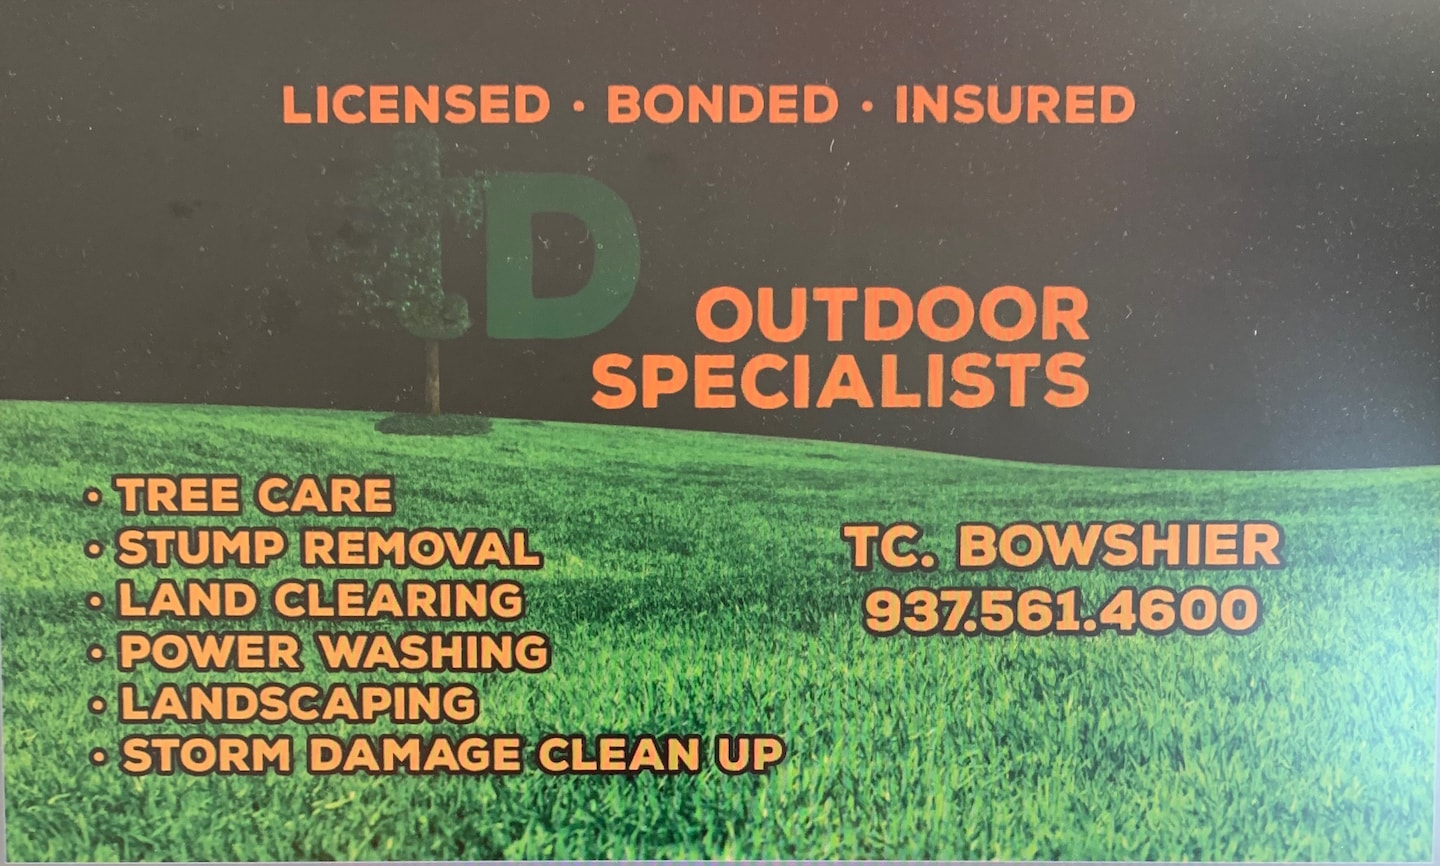 Td Outdoor Specialists